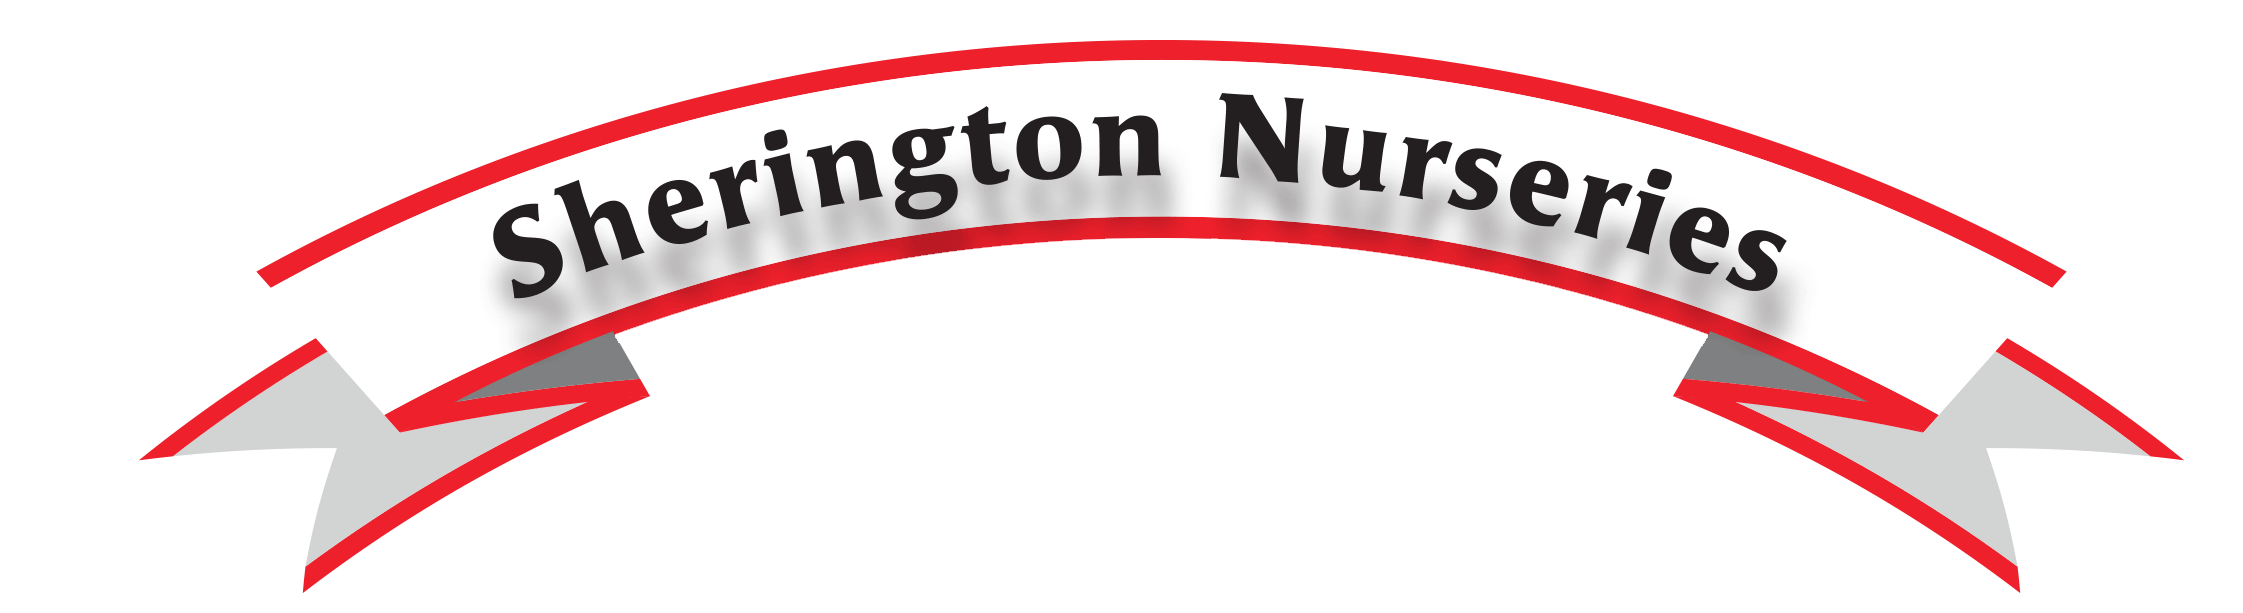 Sherington-nurseries-logo